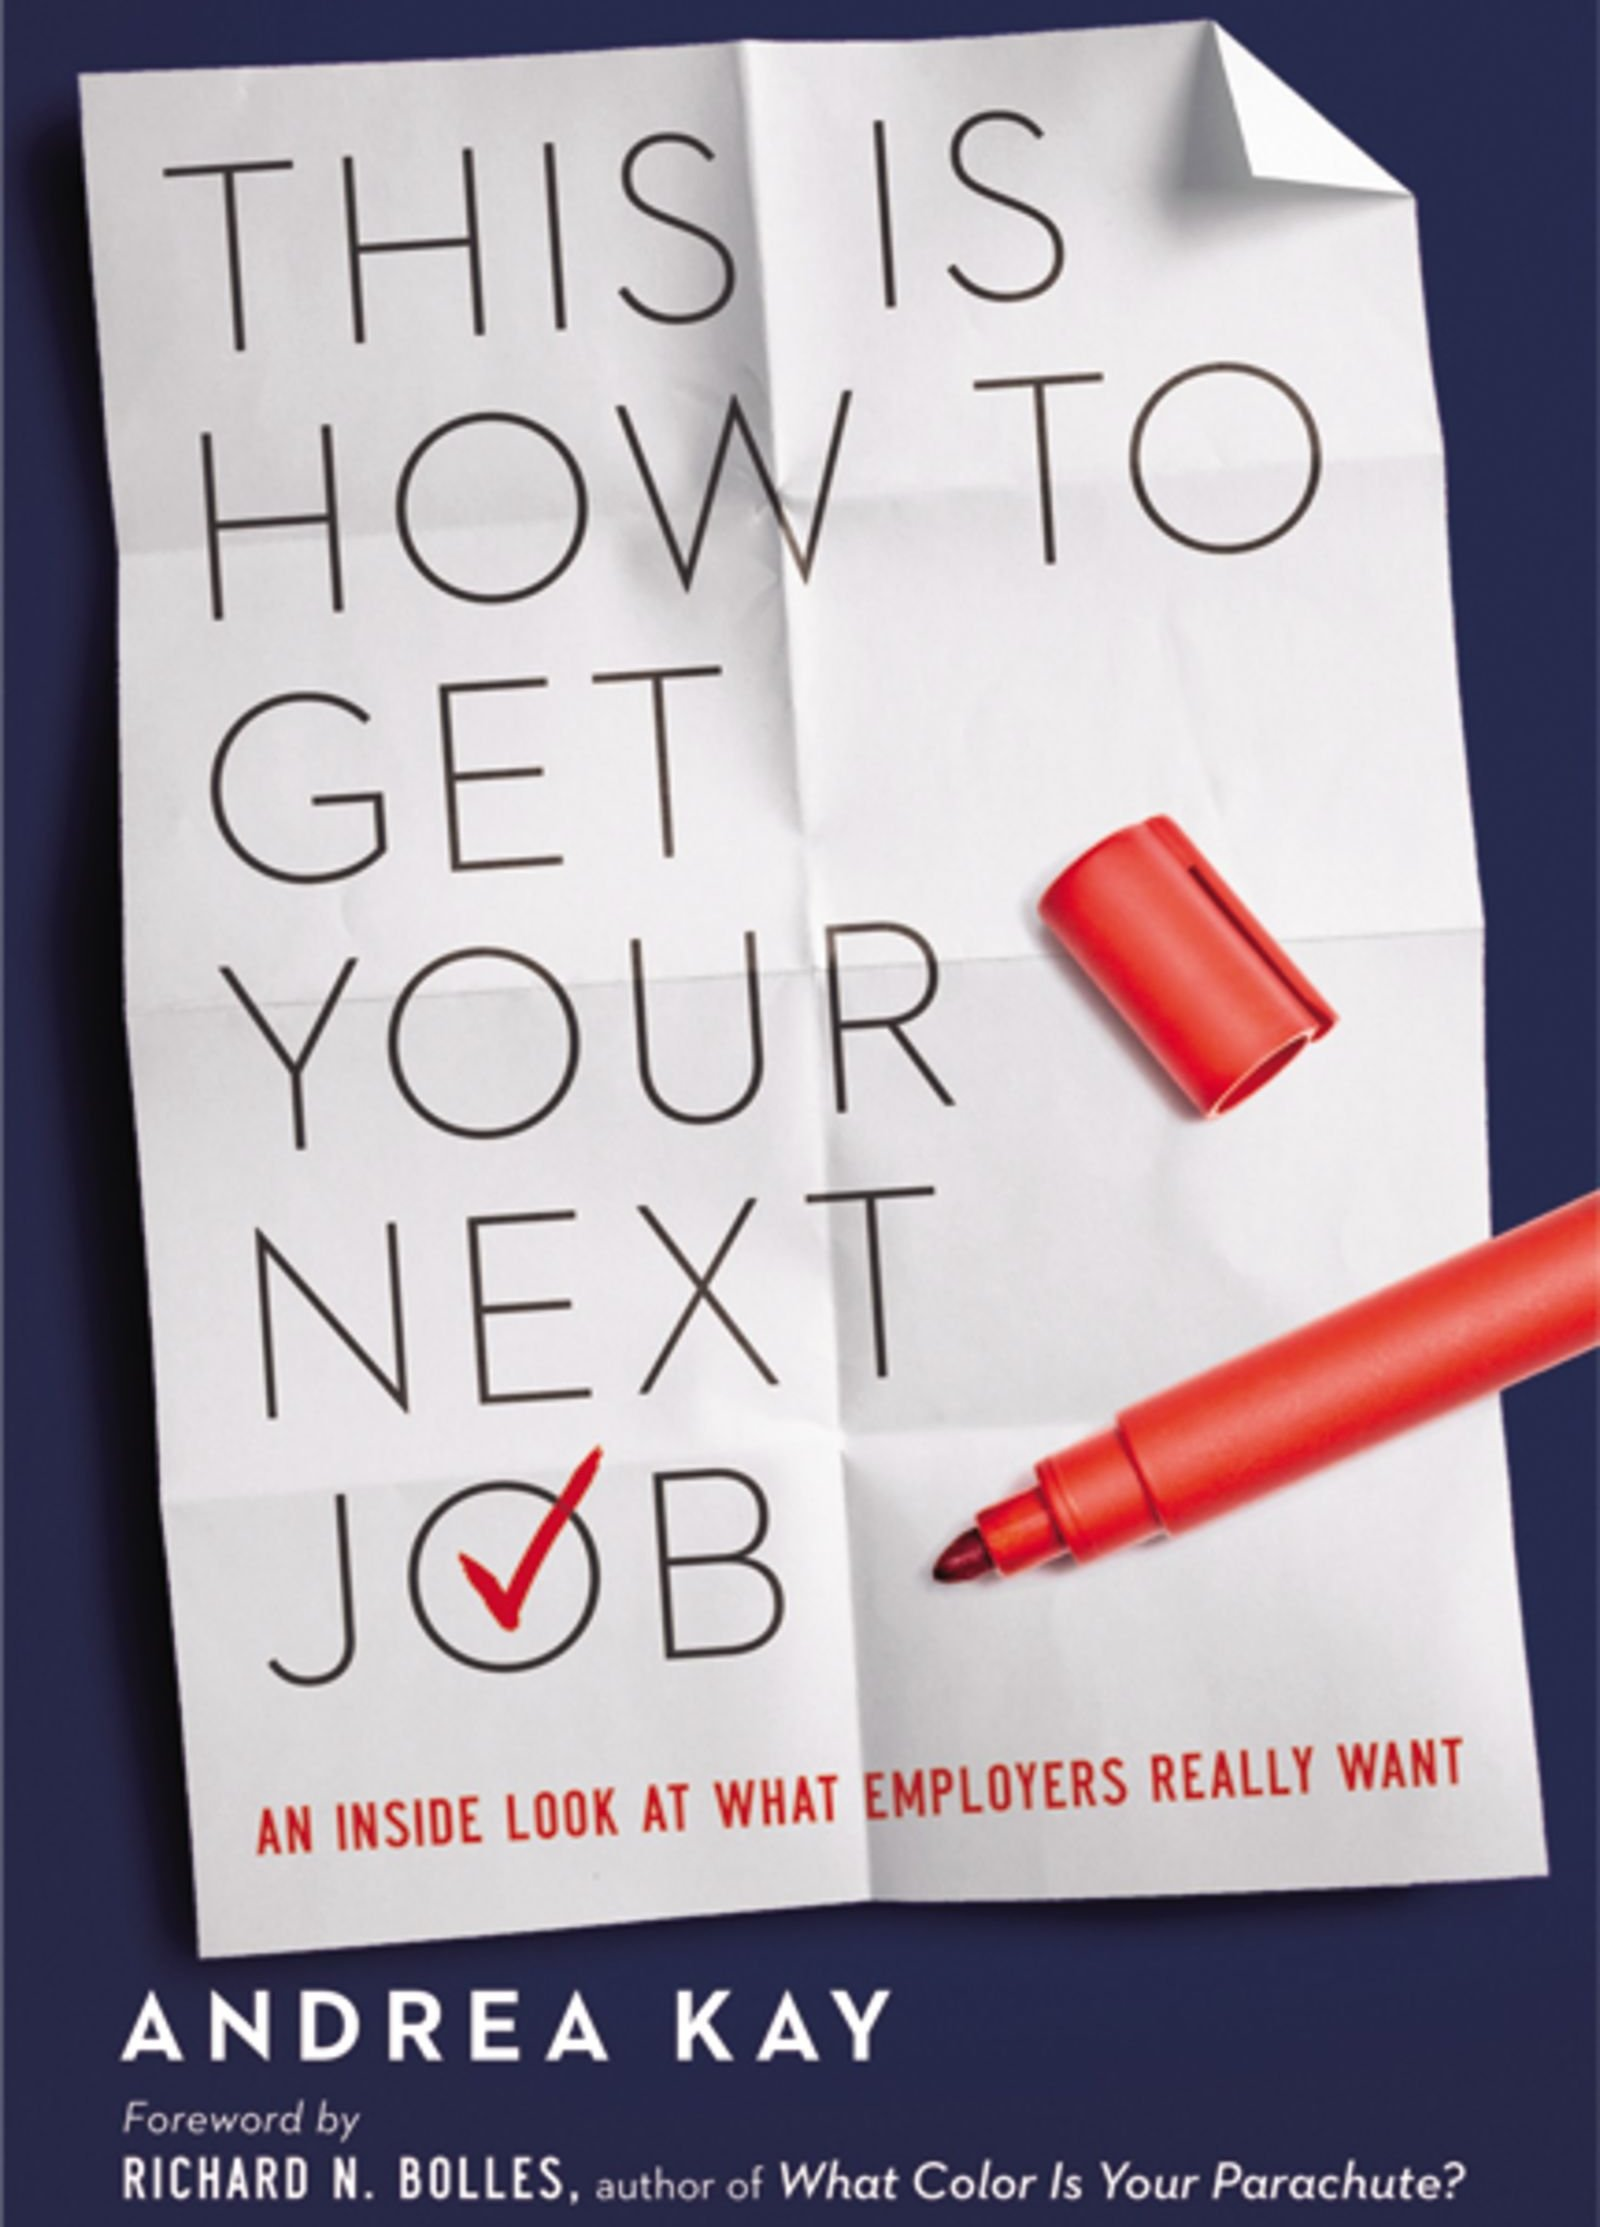 This Is How to Get Your Next Job: An Inside Look at What Employers Really Want - Andrea Kay - quotes, rating, reviews, where to buy